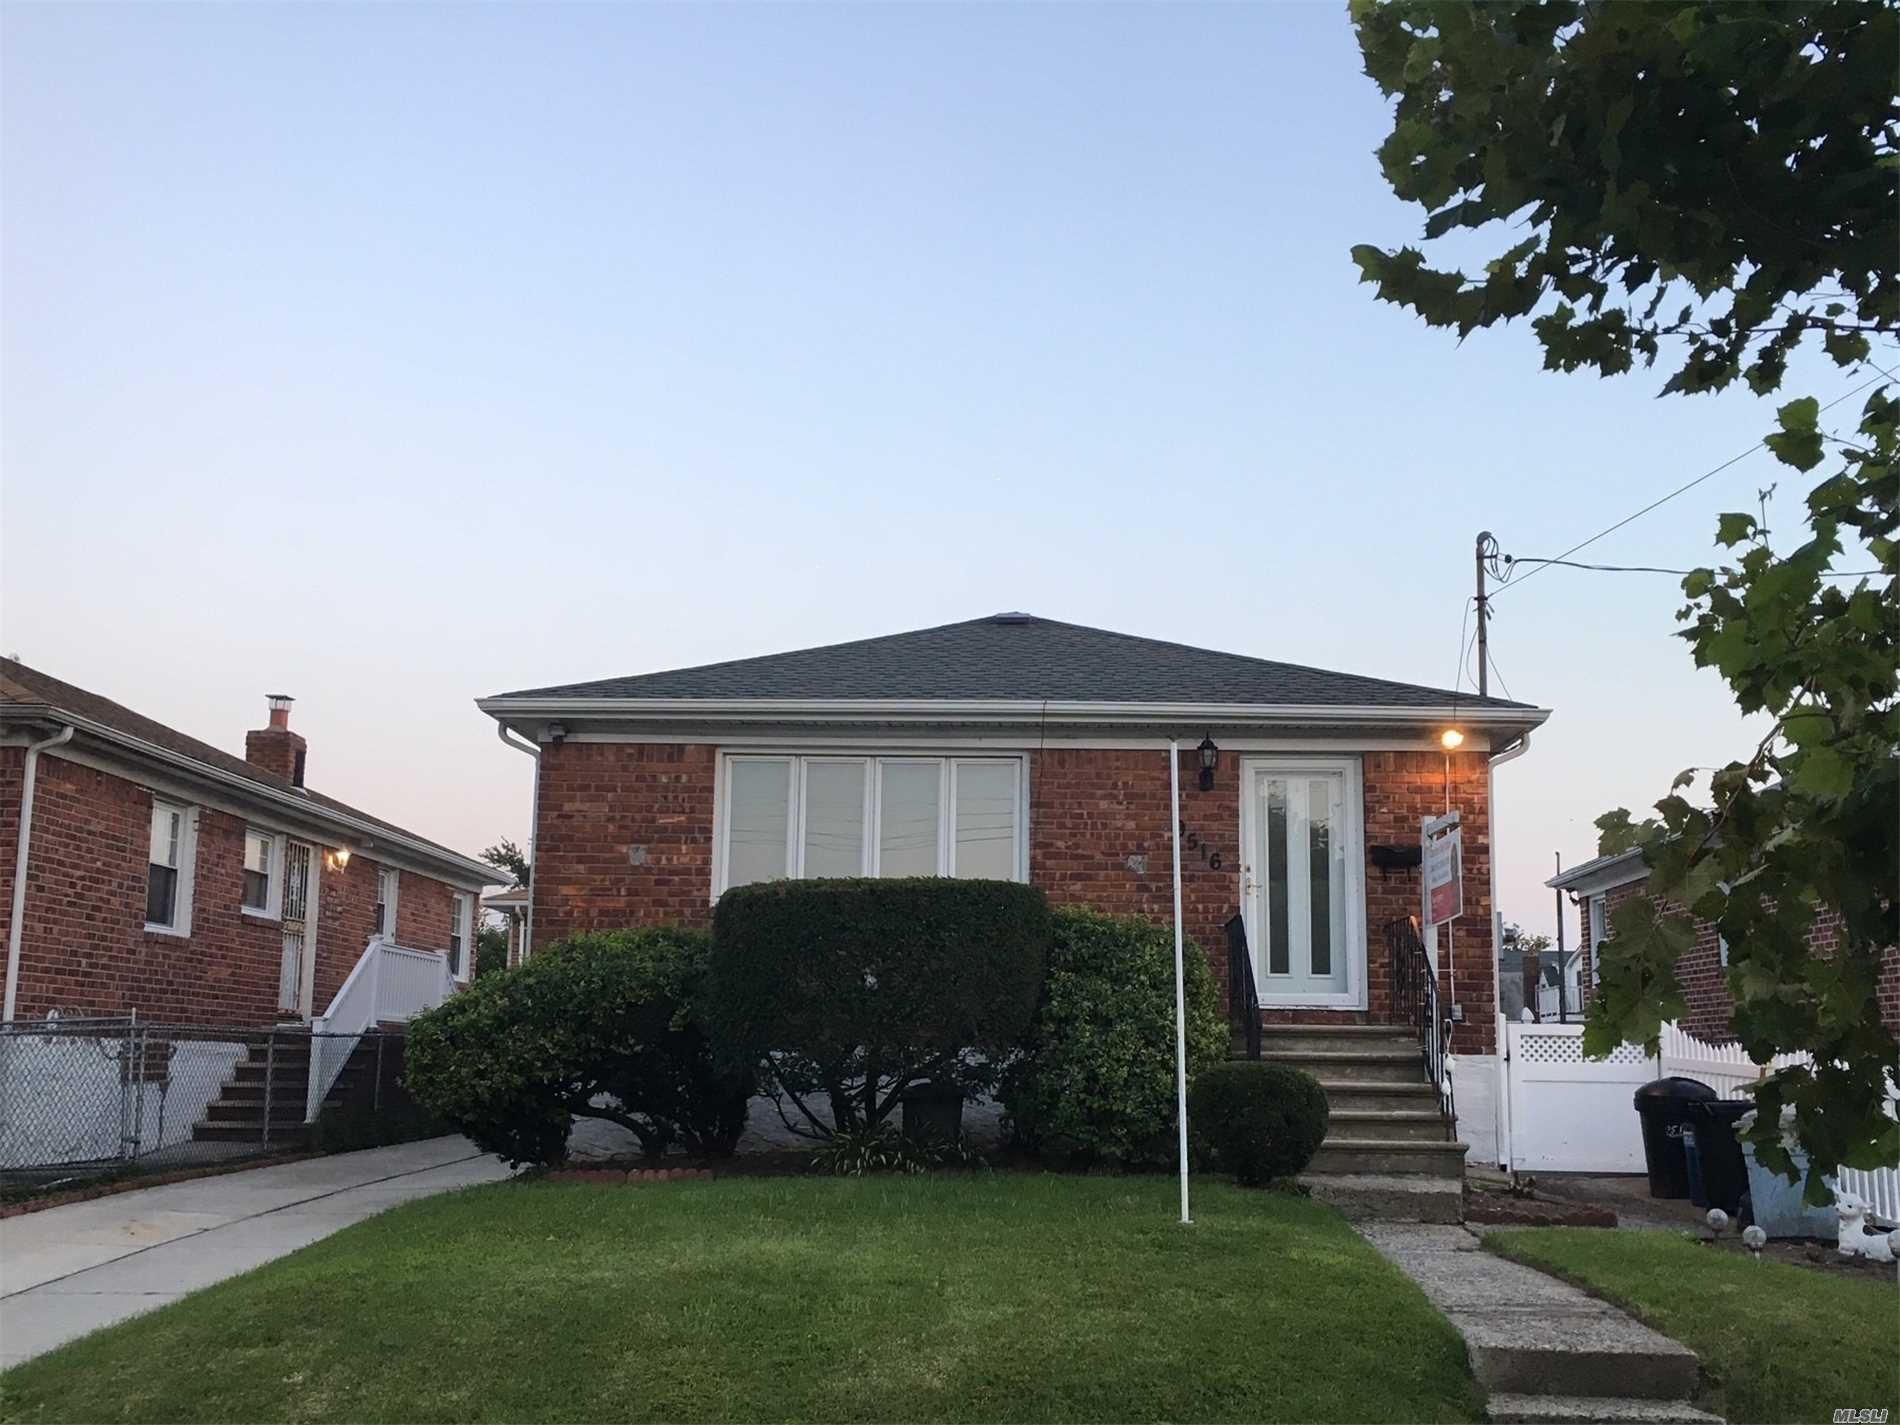 Mint Condition Brick Low Ranch Home Located In Old Howard Beach, Brand New Kitchen, Brand New Flooring Living Room And Dining Room, New Roof, Newly Cemented Driveway, New Finished Basement, Central Air Conditioning Throughout High Efficiency Boiler. Nice Fenced In Yard 2 Blocks To Charles Park.